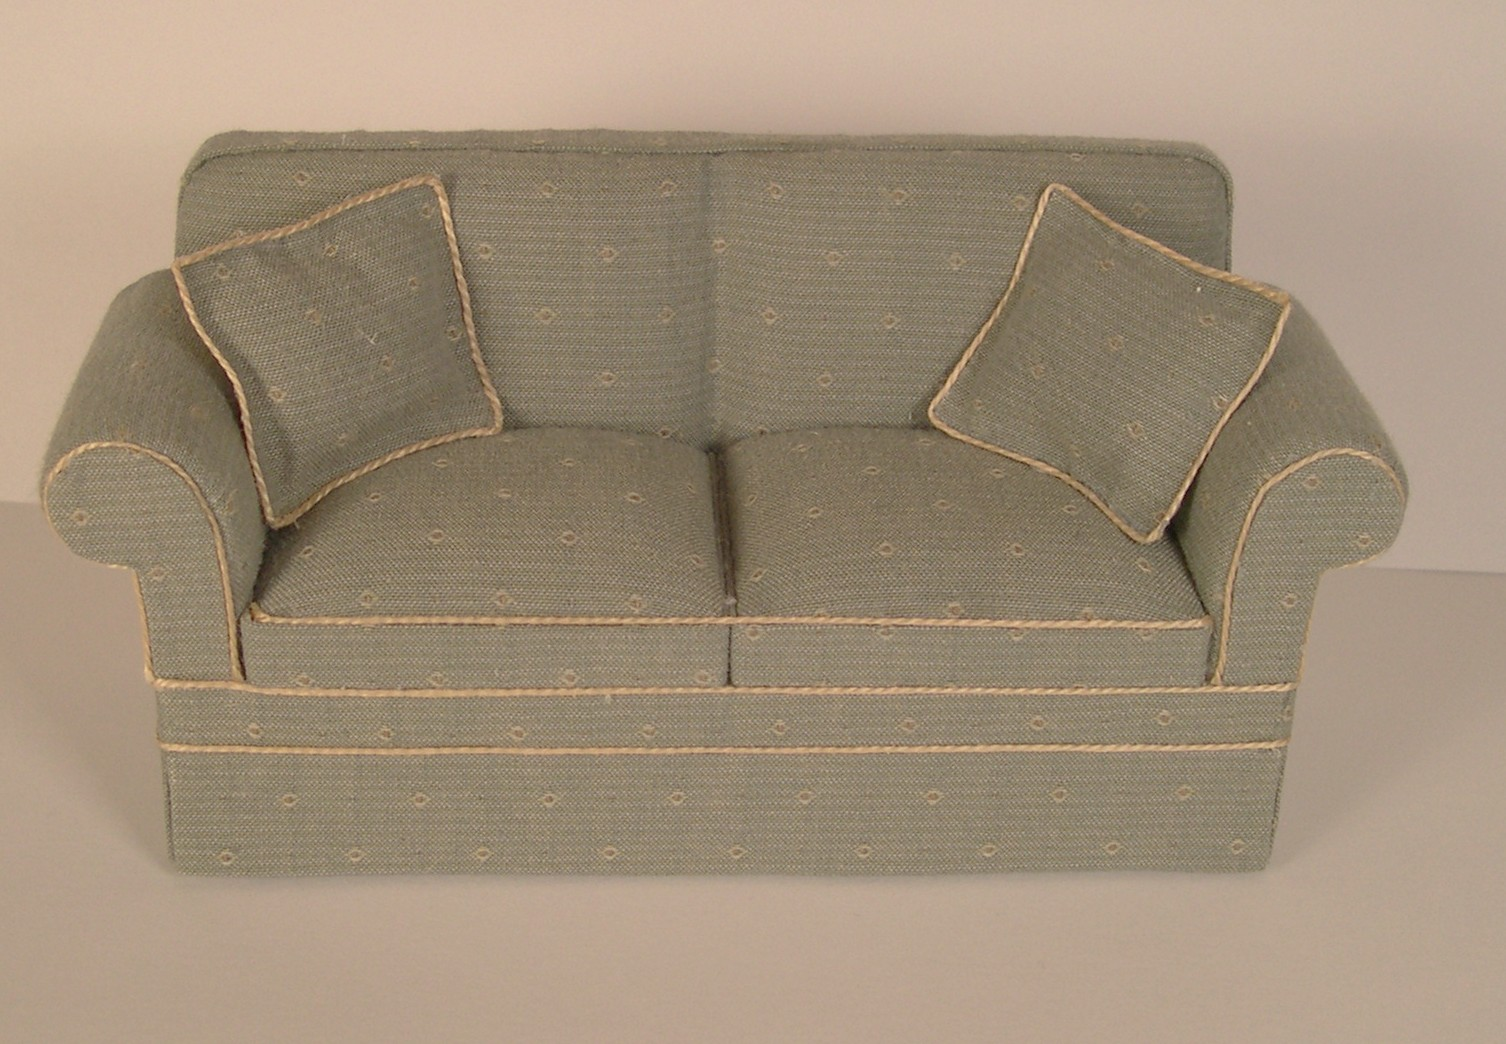 Sofa Slipcovers With Separate Cushion Covers